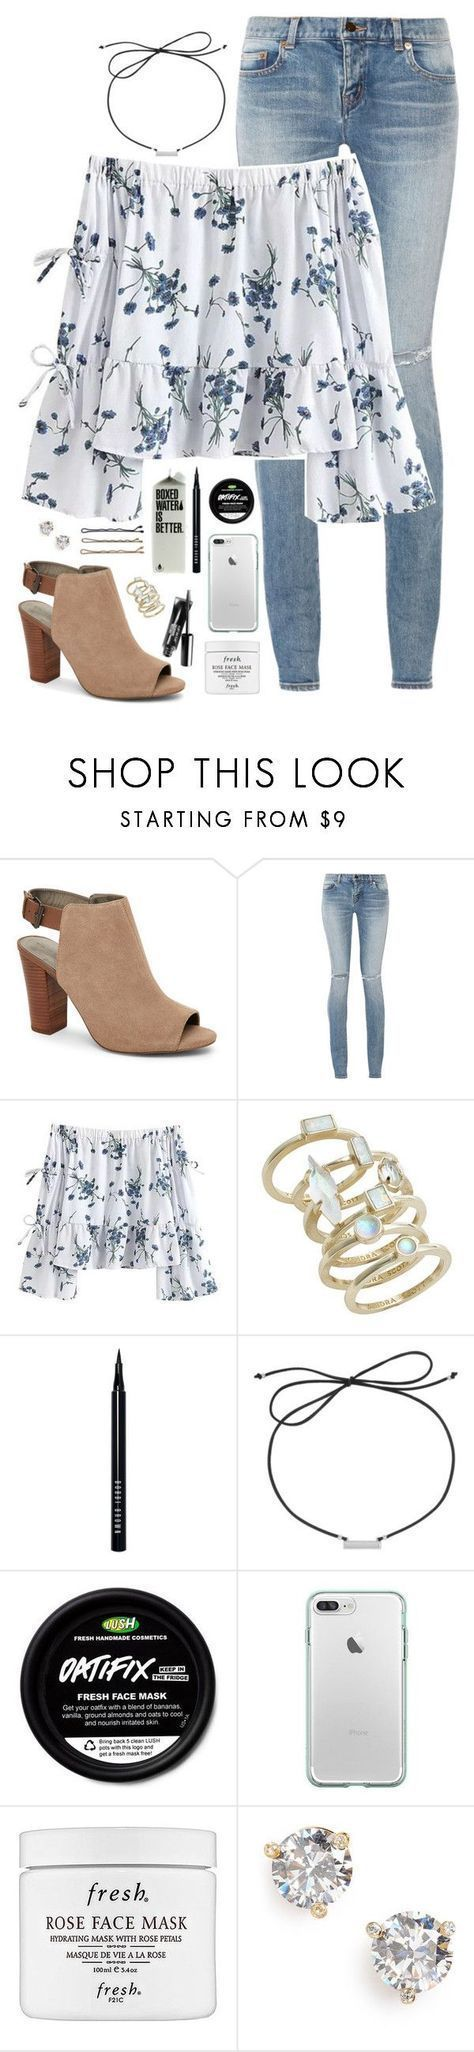 """""""trying out a new style?"""" by simplysarahkate � liked on Polyvore featuring Tahari, Yves Saint Laurent, Kendra Scott, Bobbi Brown Cosmetics, Laundry by Shelli Segal, Guide London, Fresh and Kate Spade"""